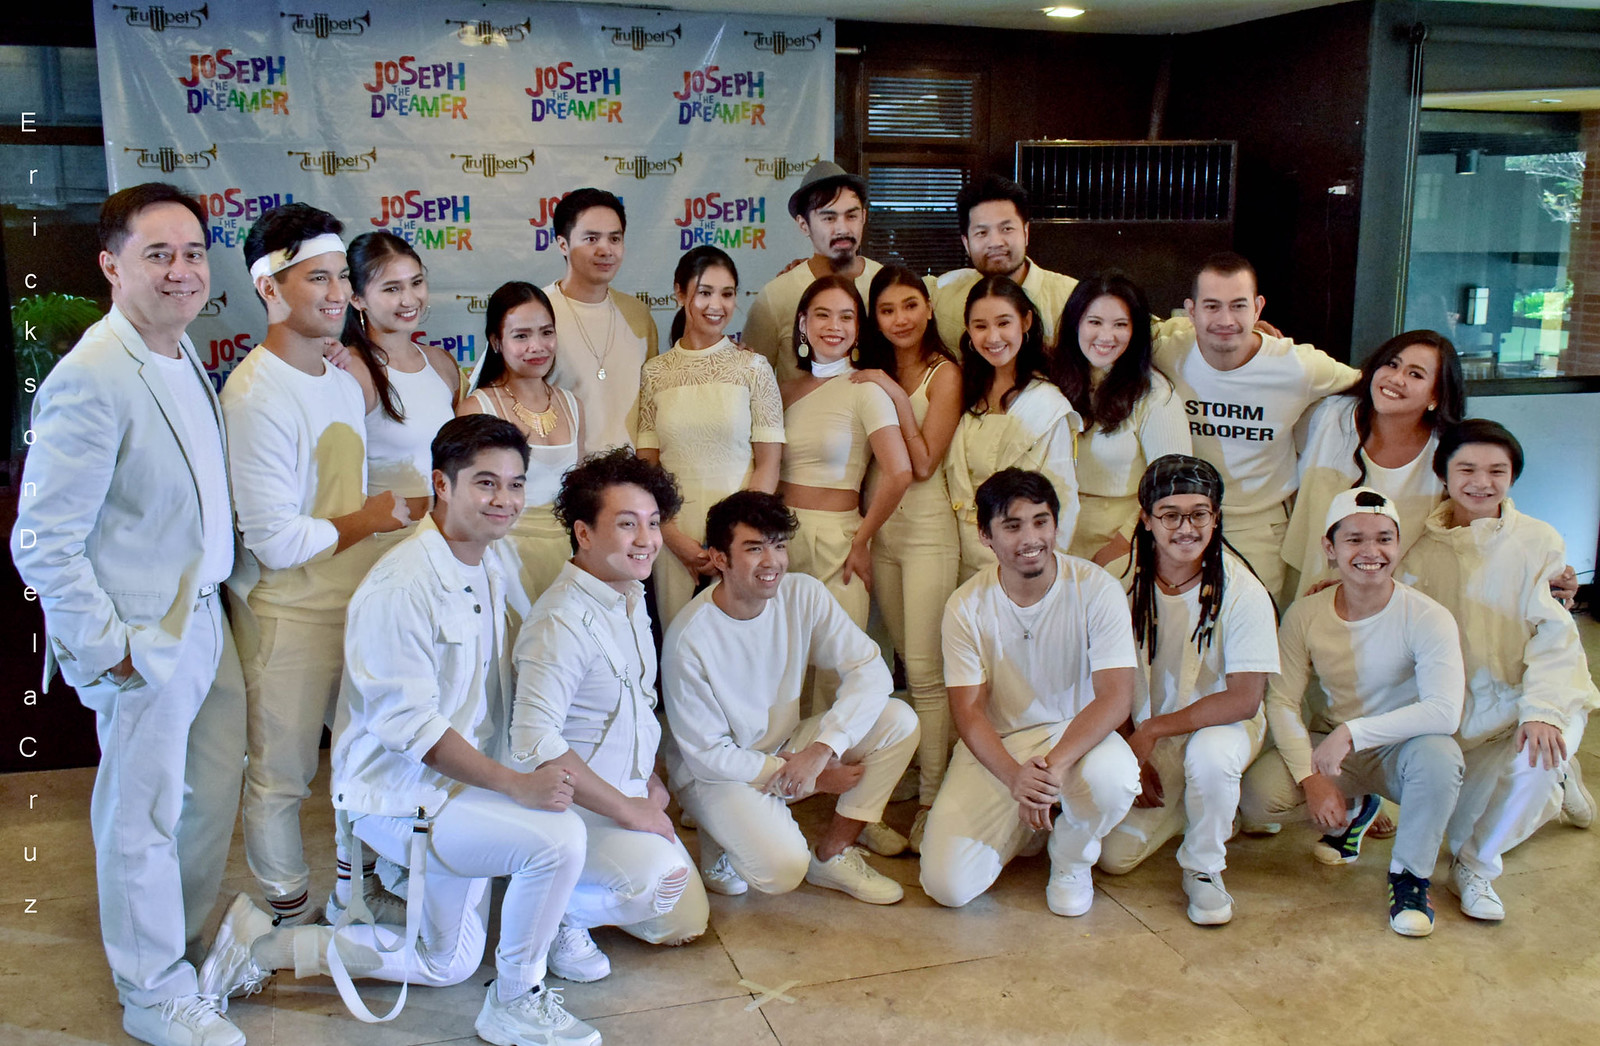 The Cast _Joseph The Dreamer PressCon (Photo by Erickson dela Cruz)